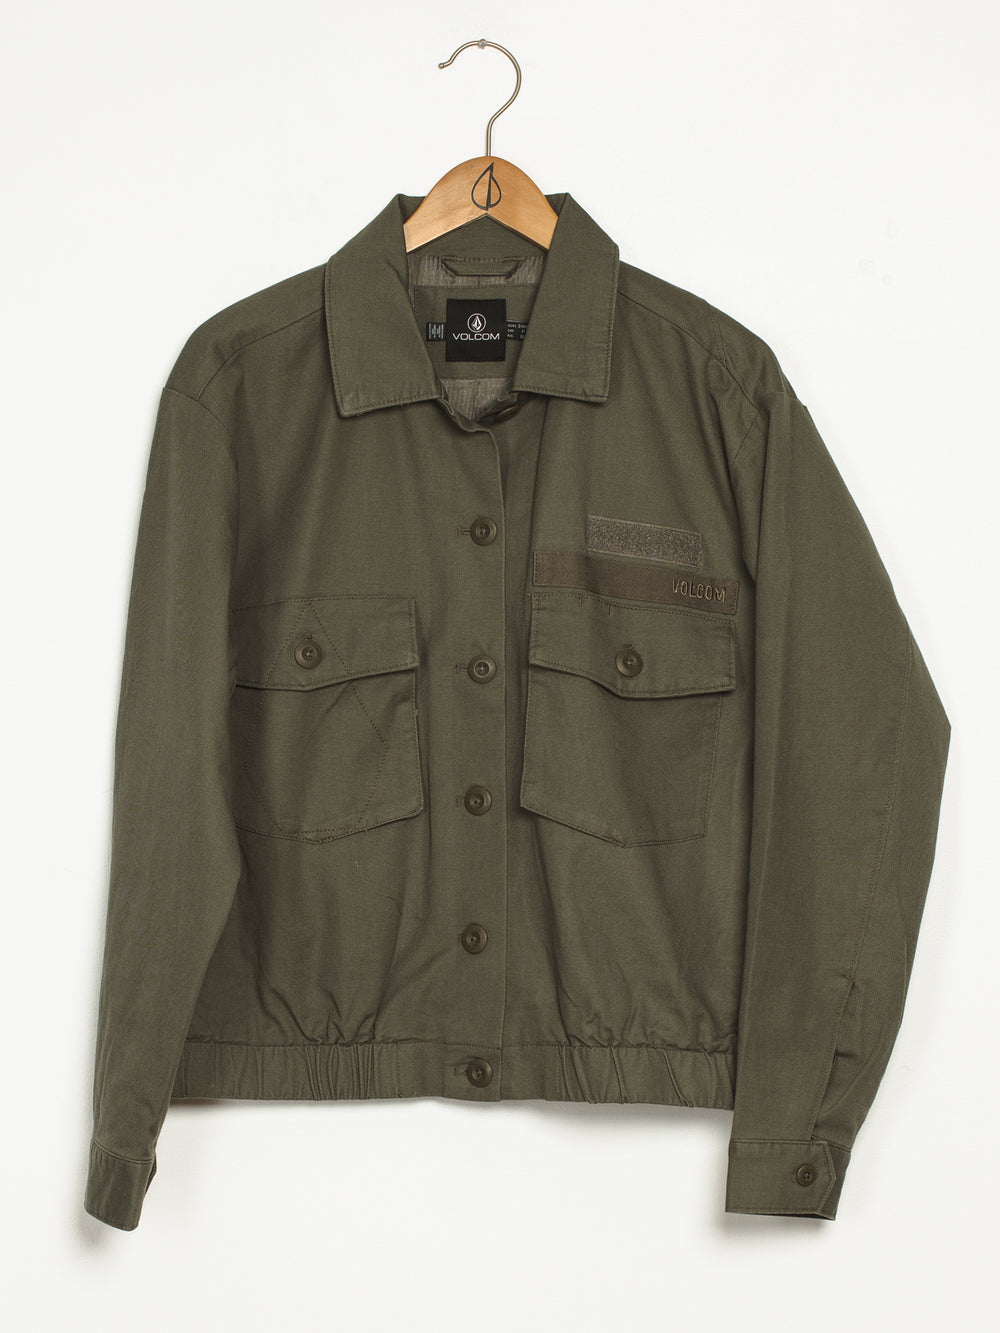 WOMENS ARMY WHALER JACKET - OLIVE